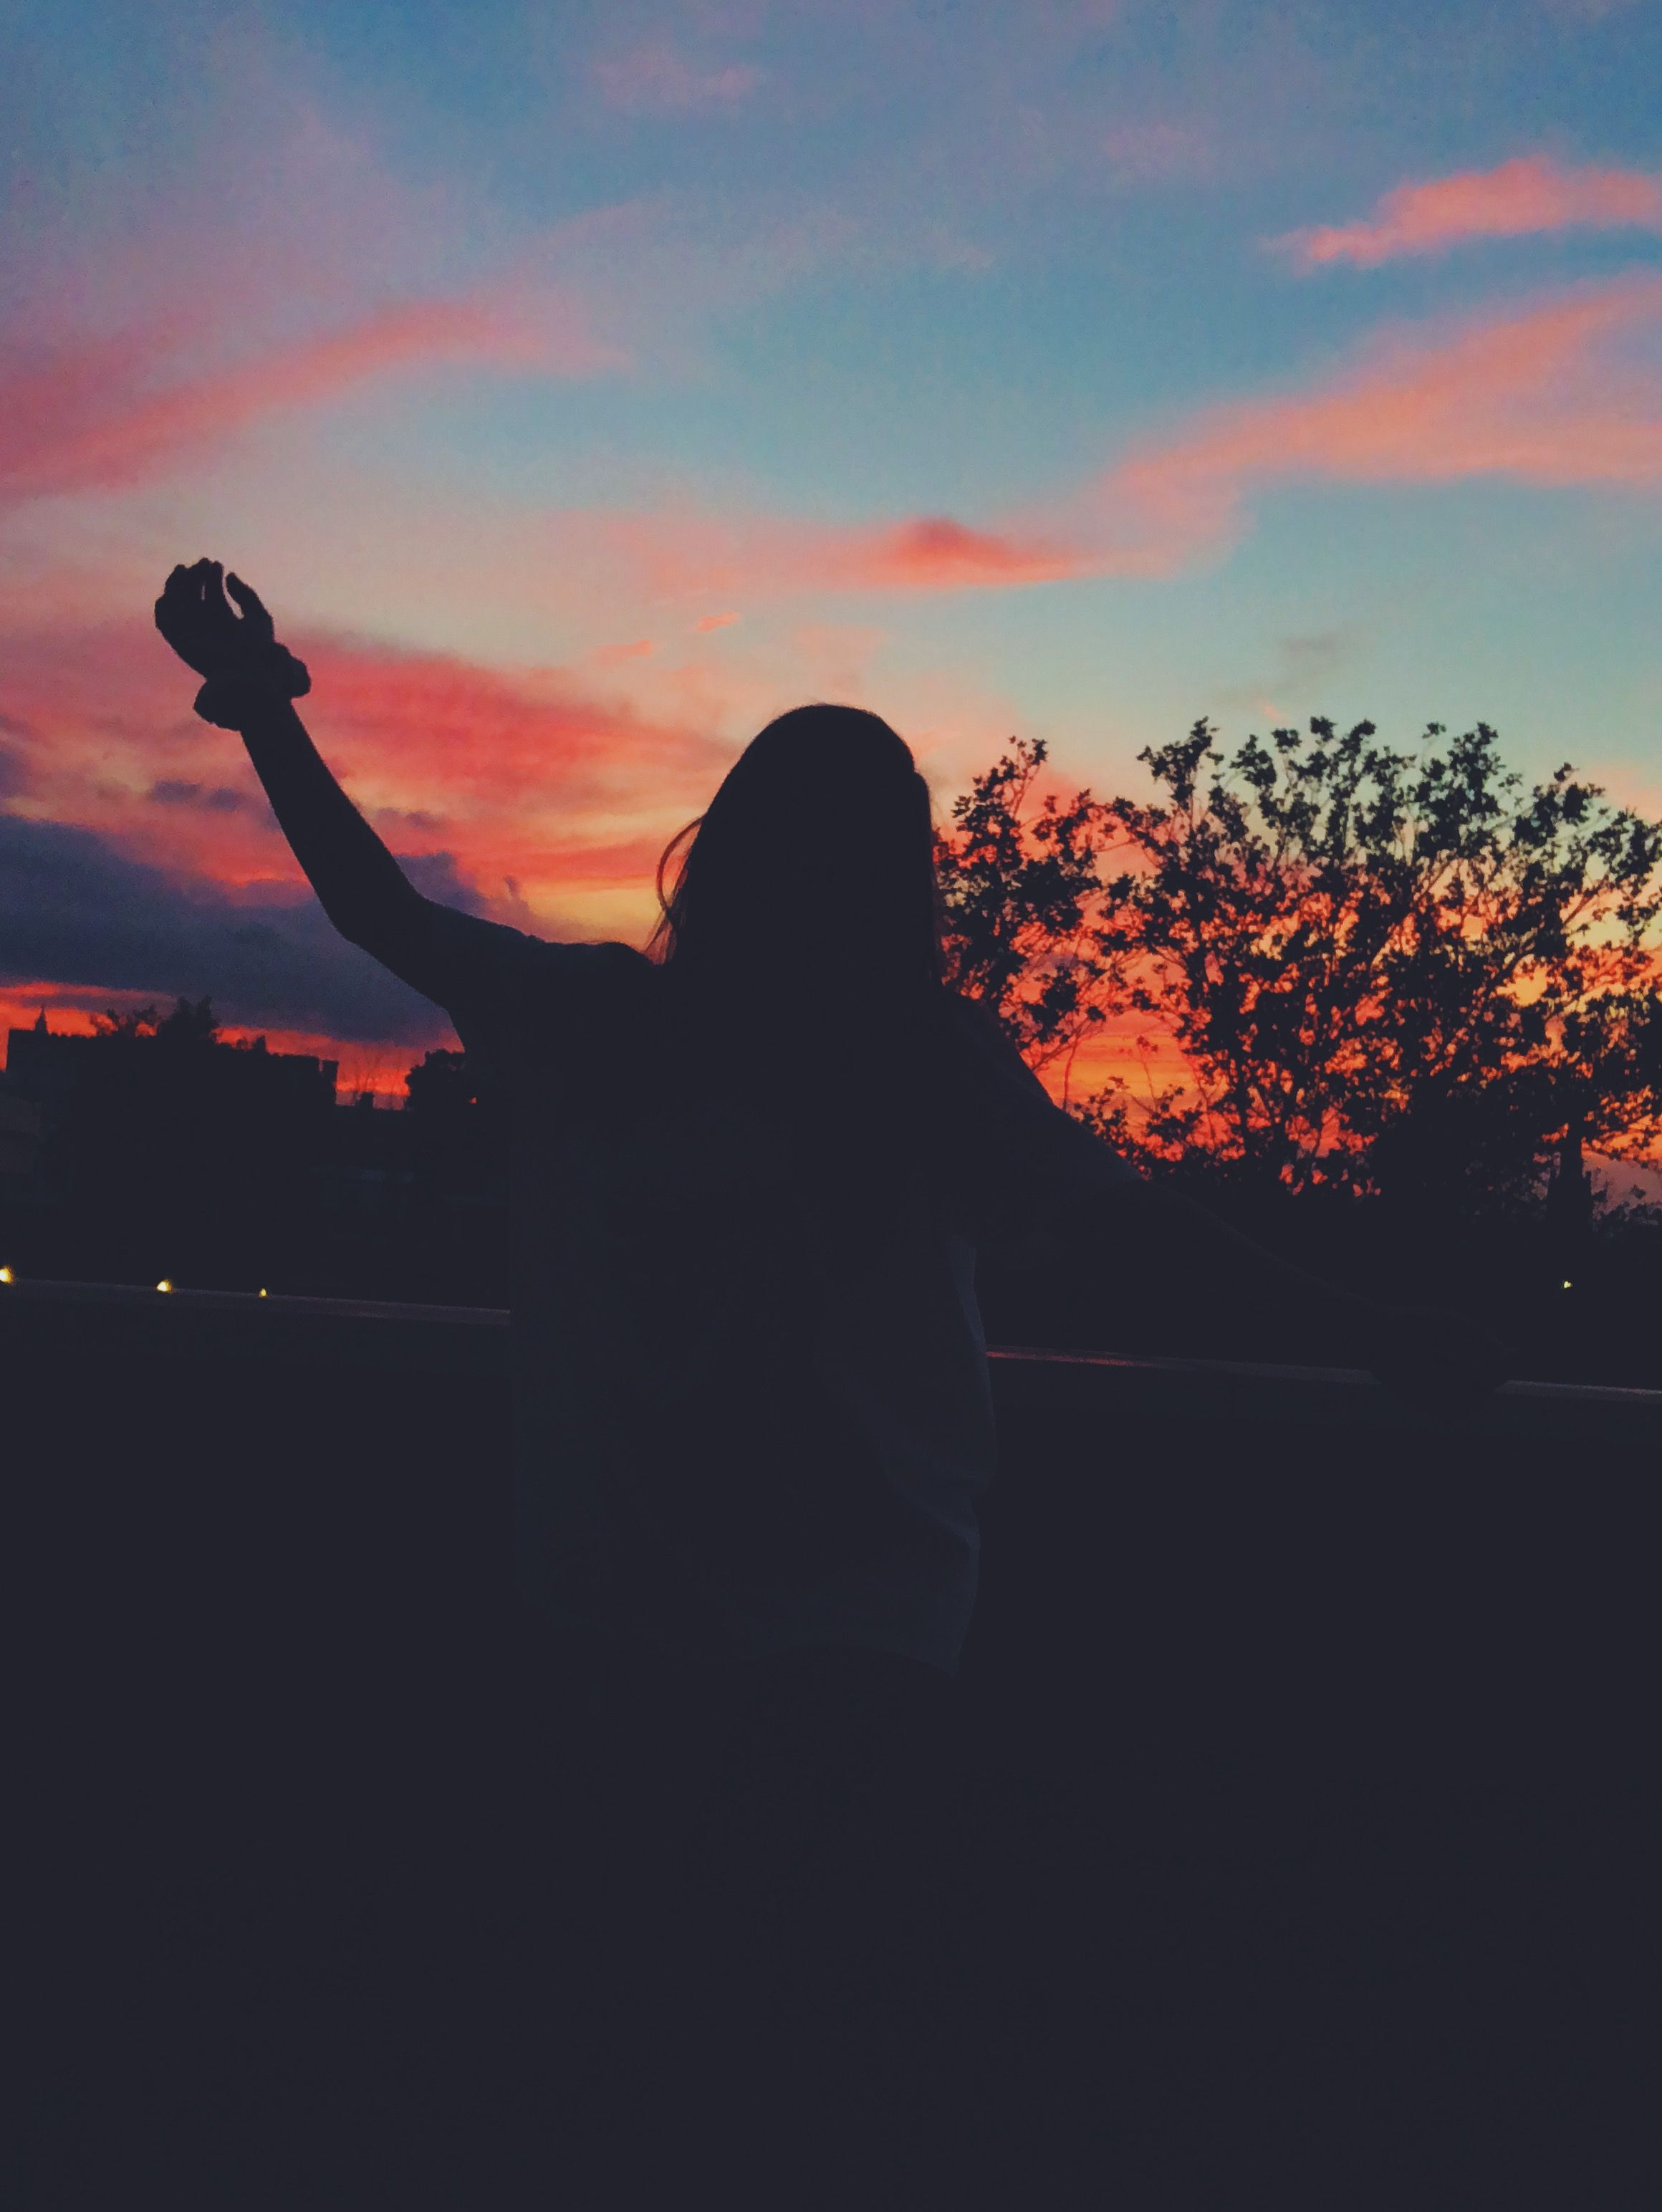 Pin By Looouuurdess Jiimmeenez On Fotos Hacer Silhouette